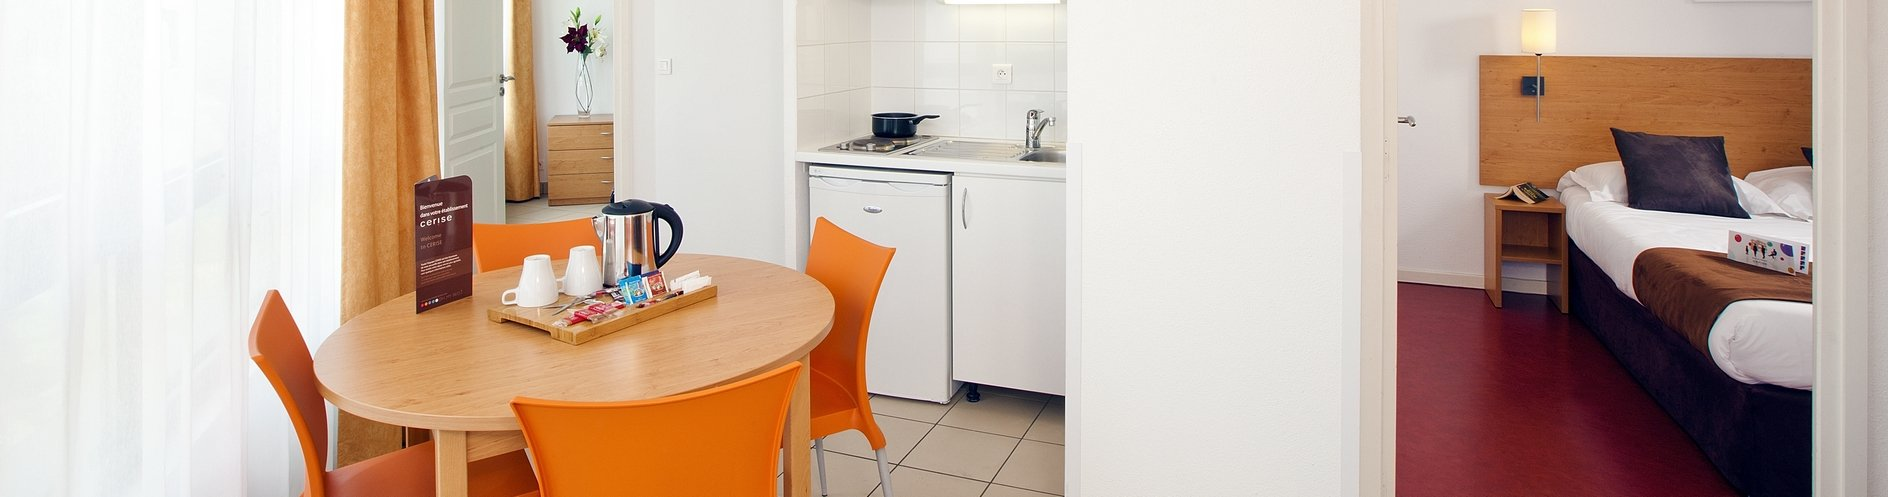 residence-cerise-strasbourg-appartement-4-personnes.jpg